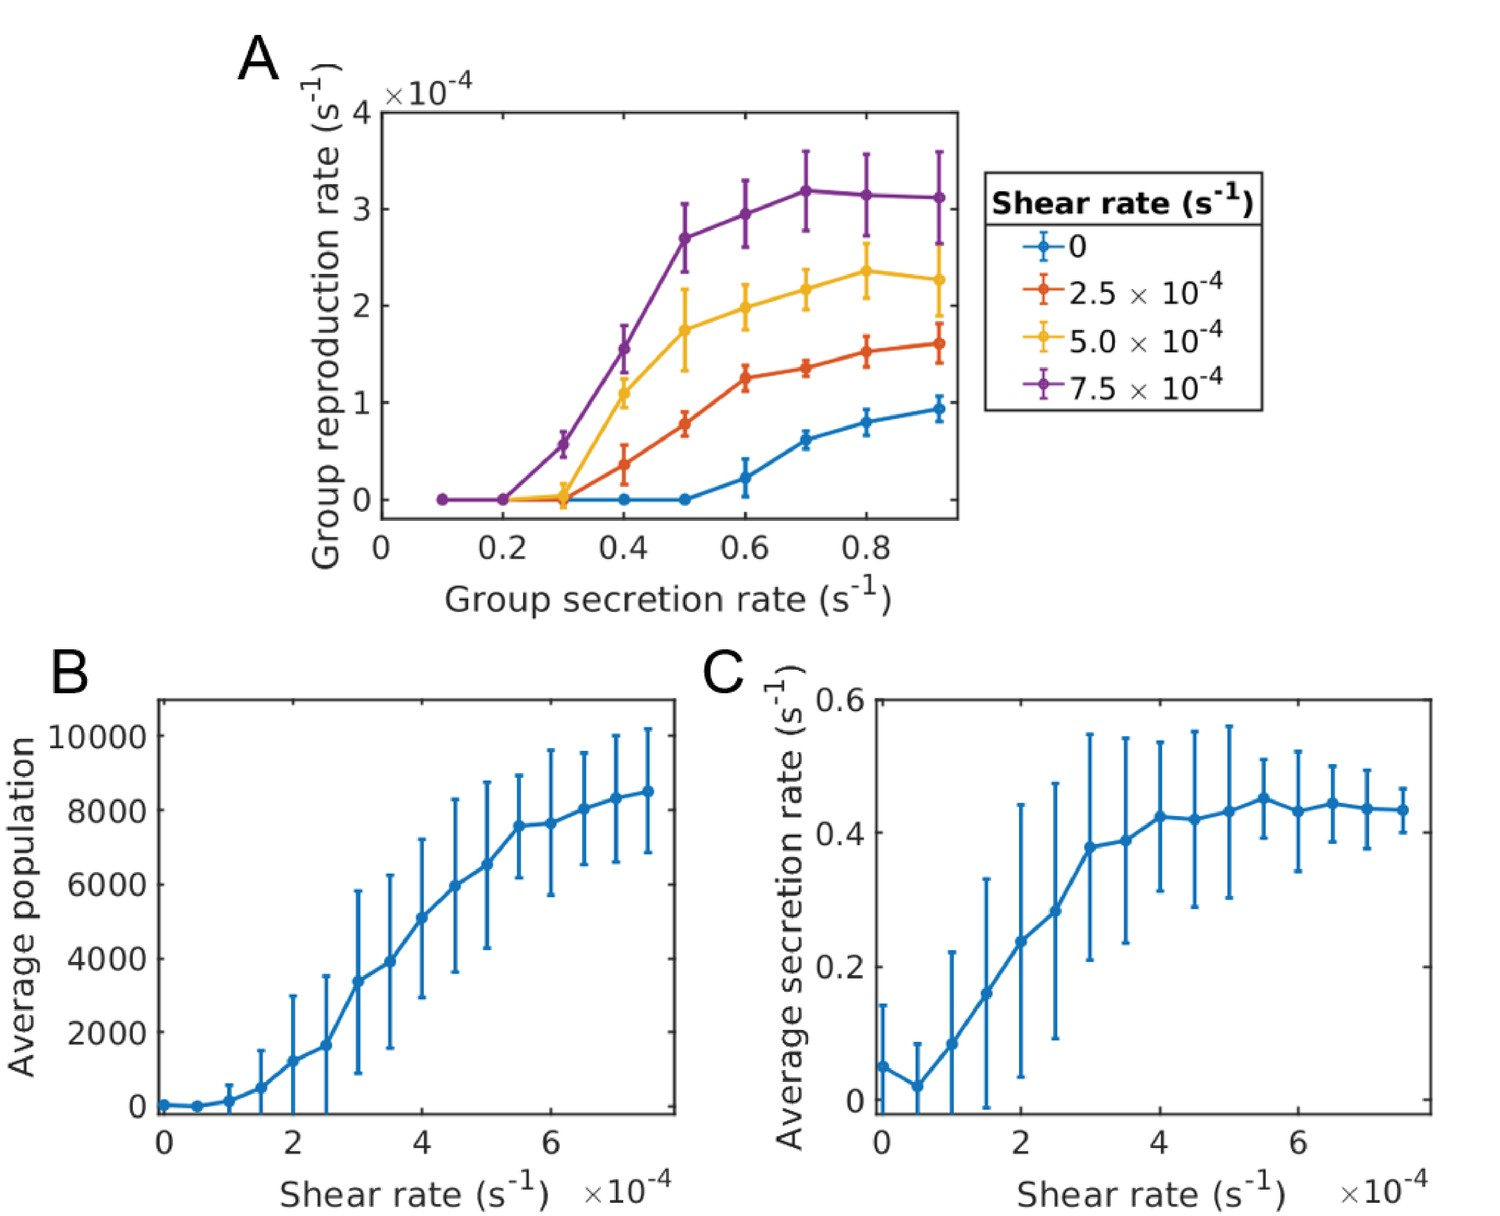 Shearing in flow environment promotes evolution of social